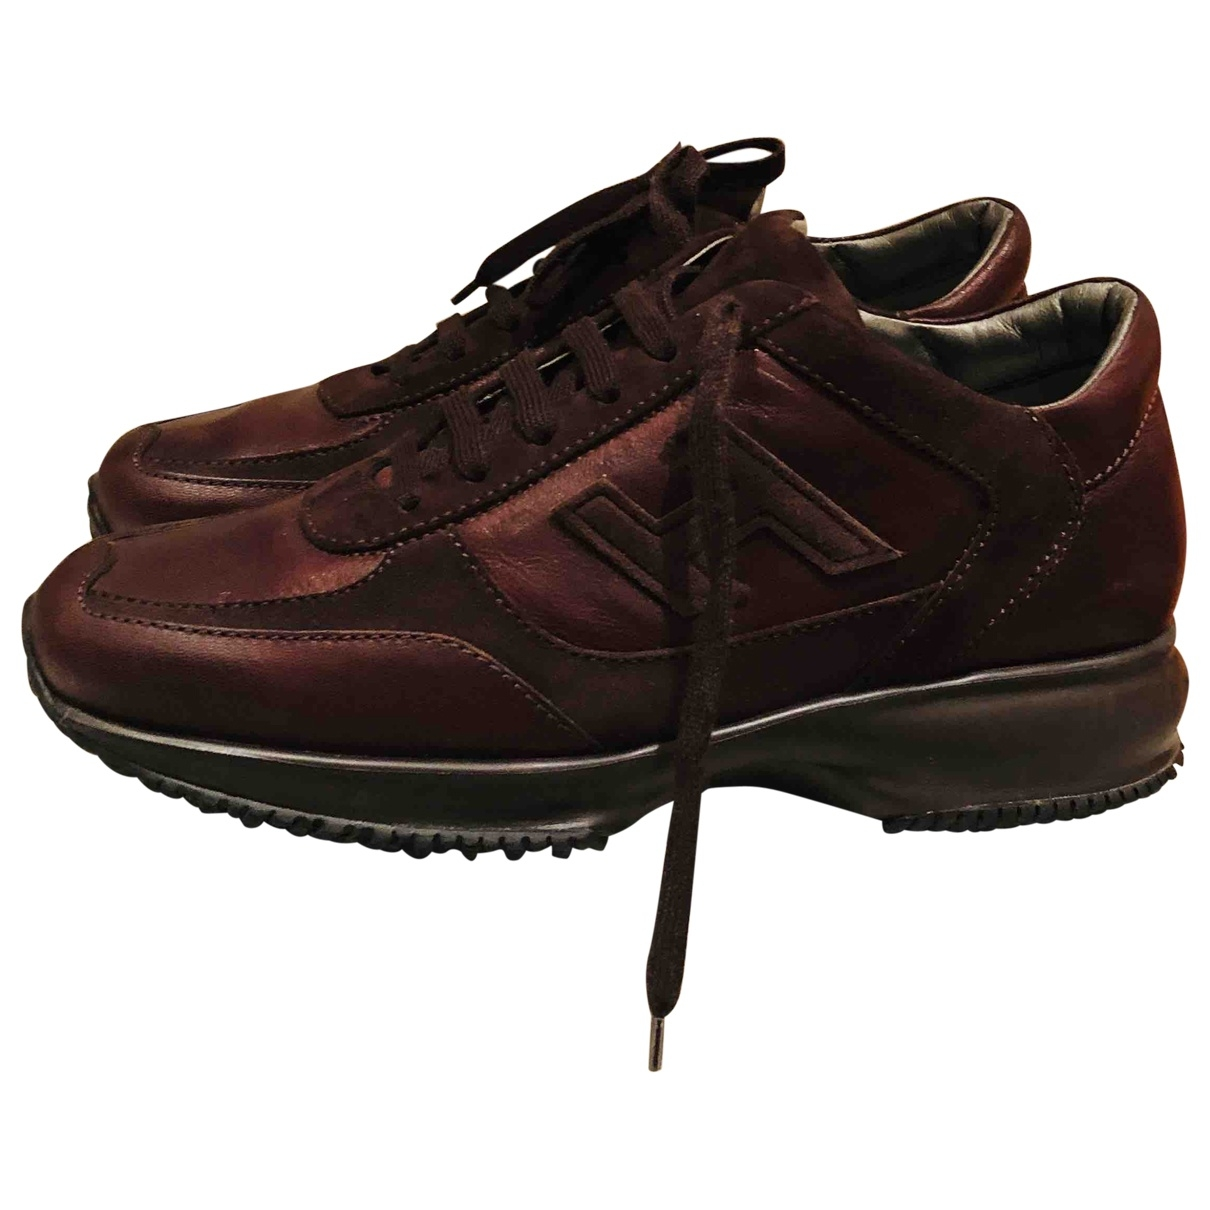 Hogan \N Brown Leather Trainers for Women 37 EU